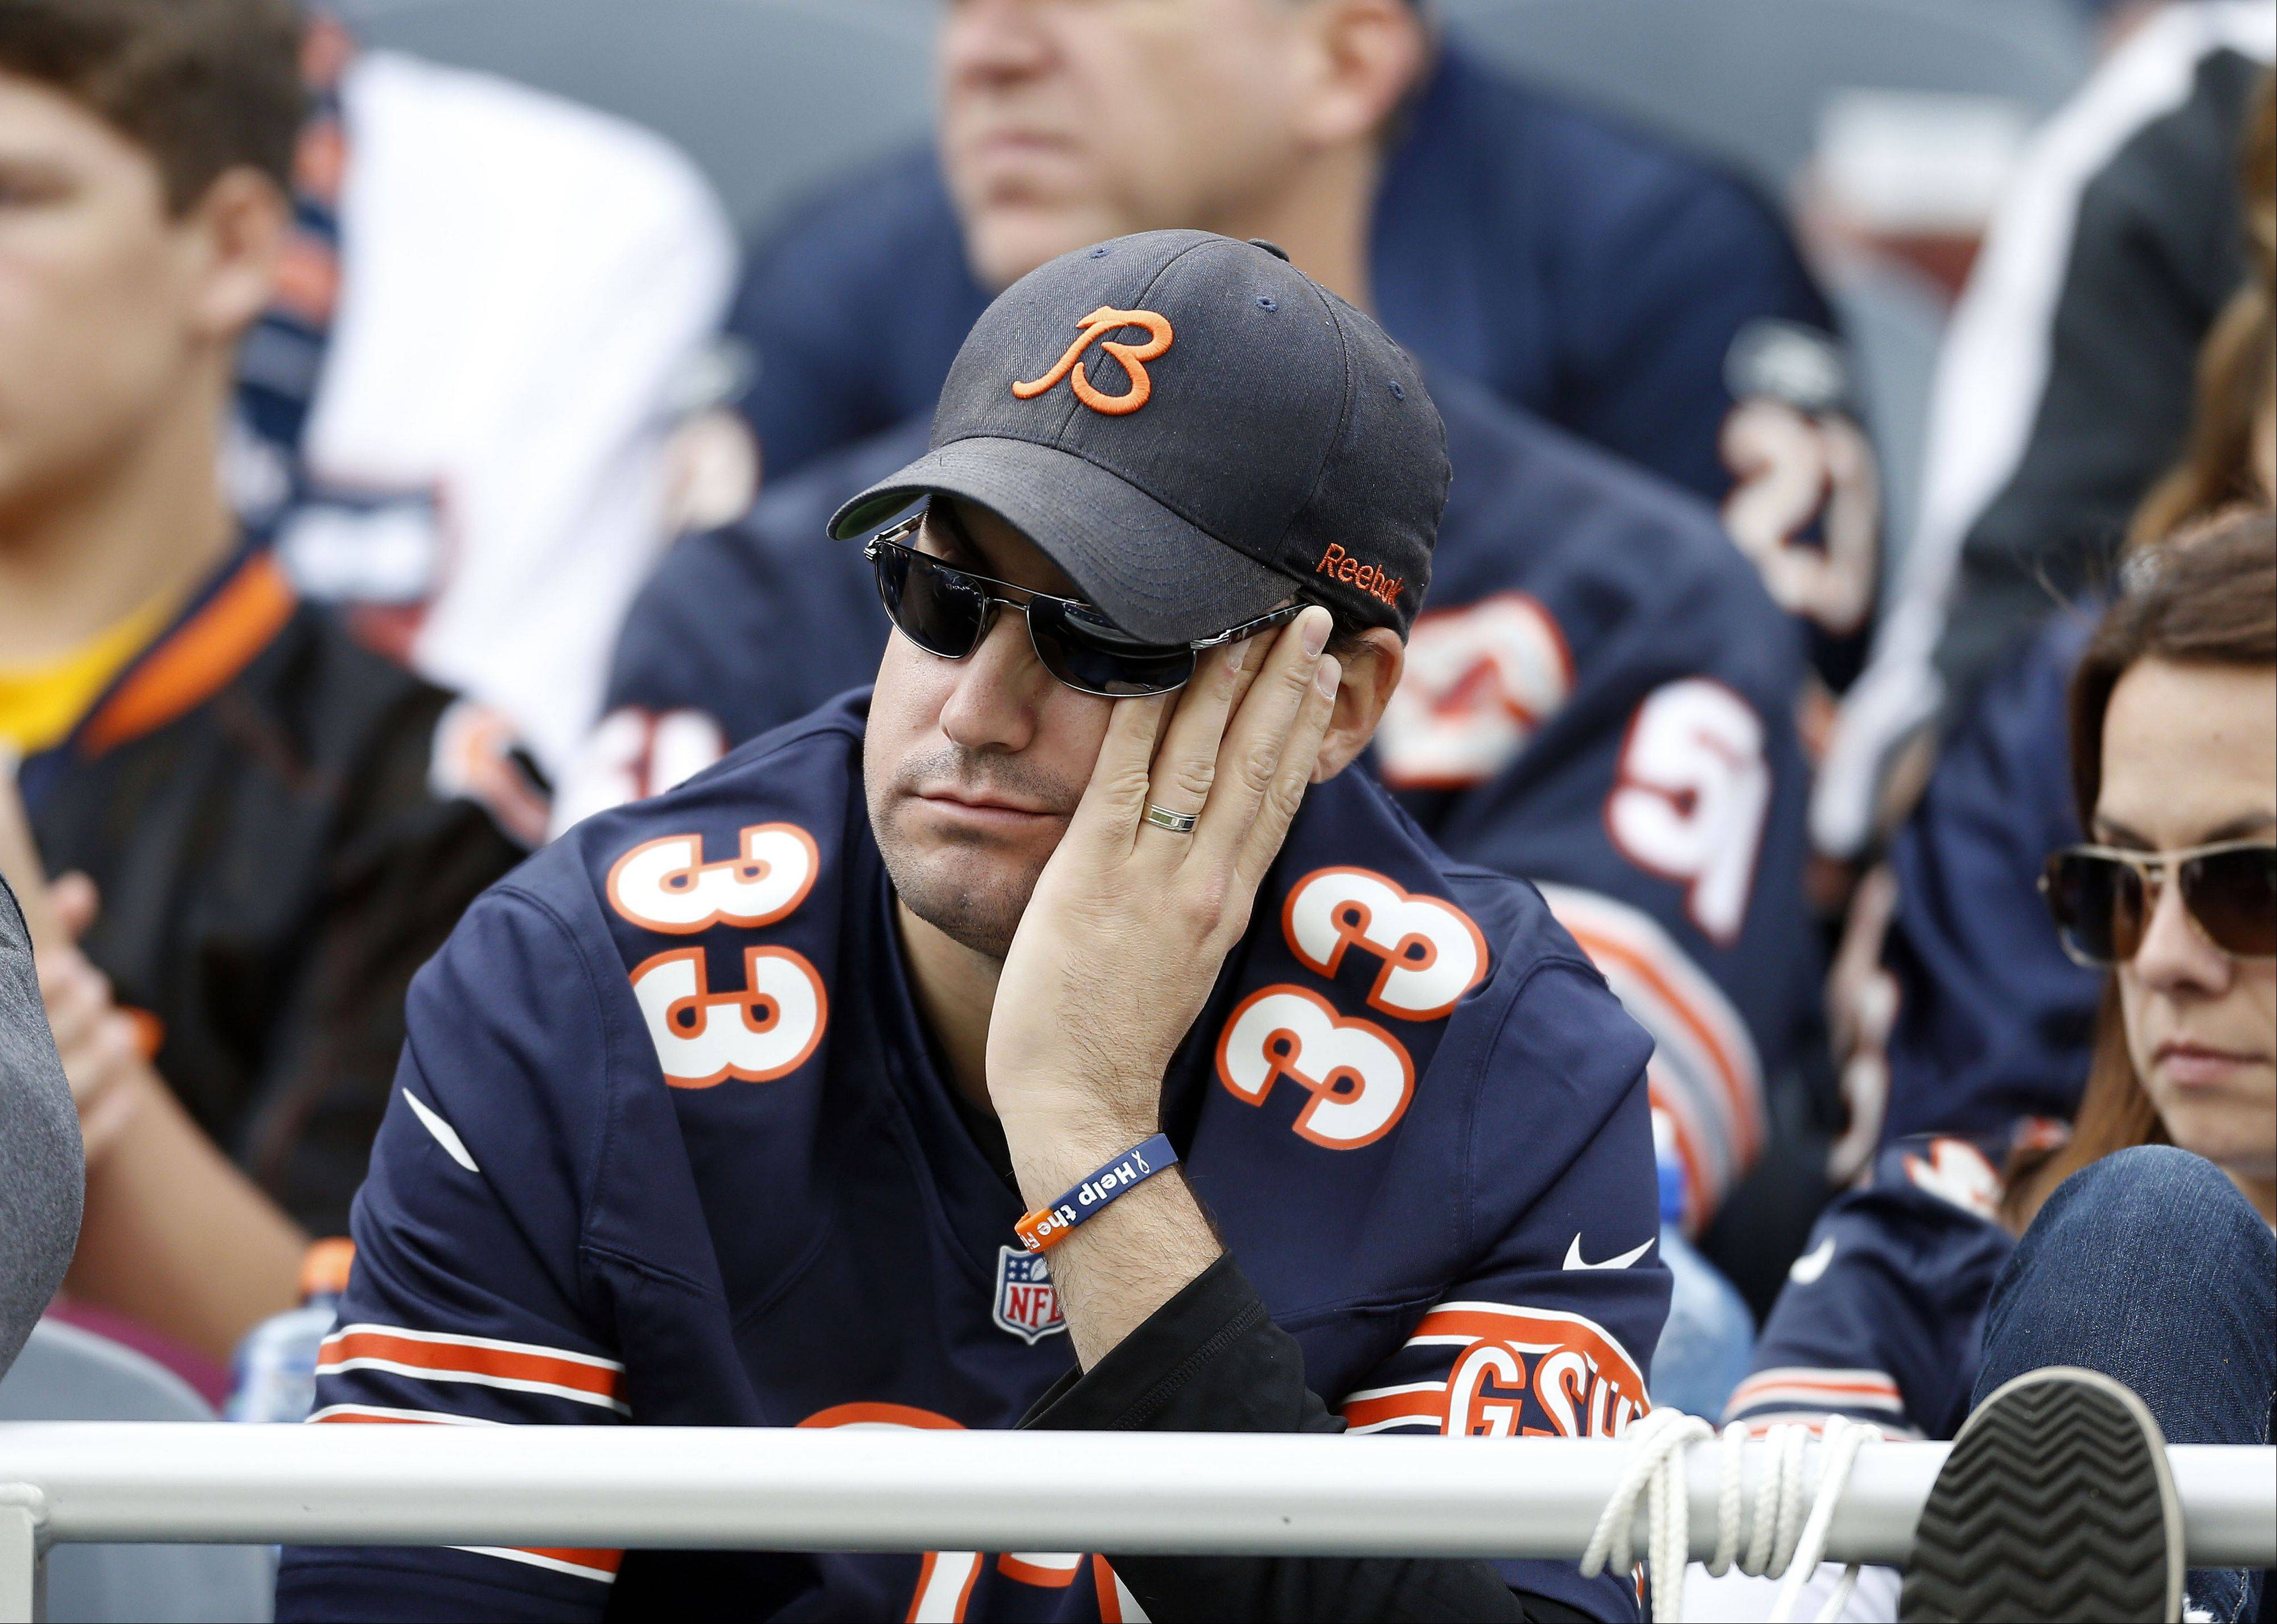 Bears fans look dejected during the Bears 26-18 loss to the New Orleans Saints Sunday at Soldier Field in Chicago.